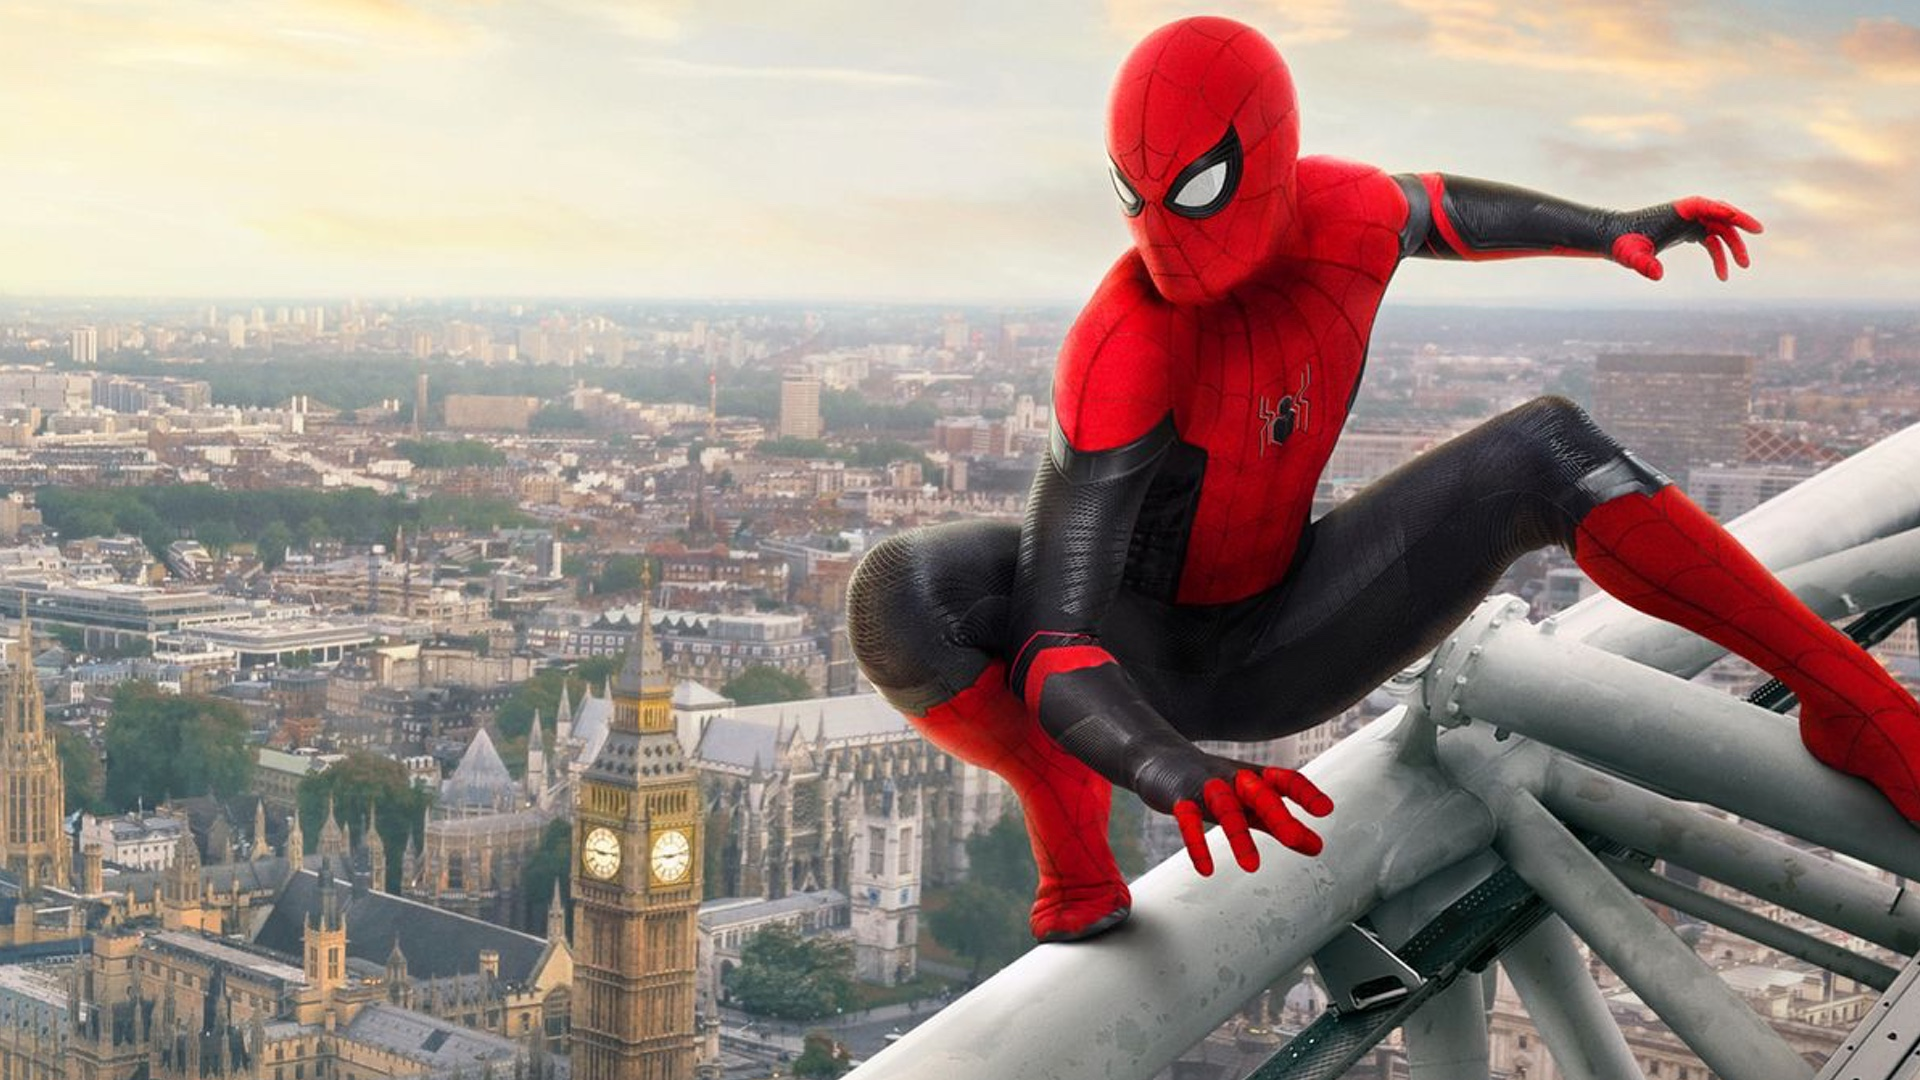 a-new-spider-man-far-from-home-trailer-reveals-where-spidey-gets-his-new-red-and-black-suit-social.jpg